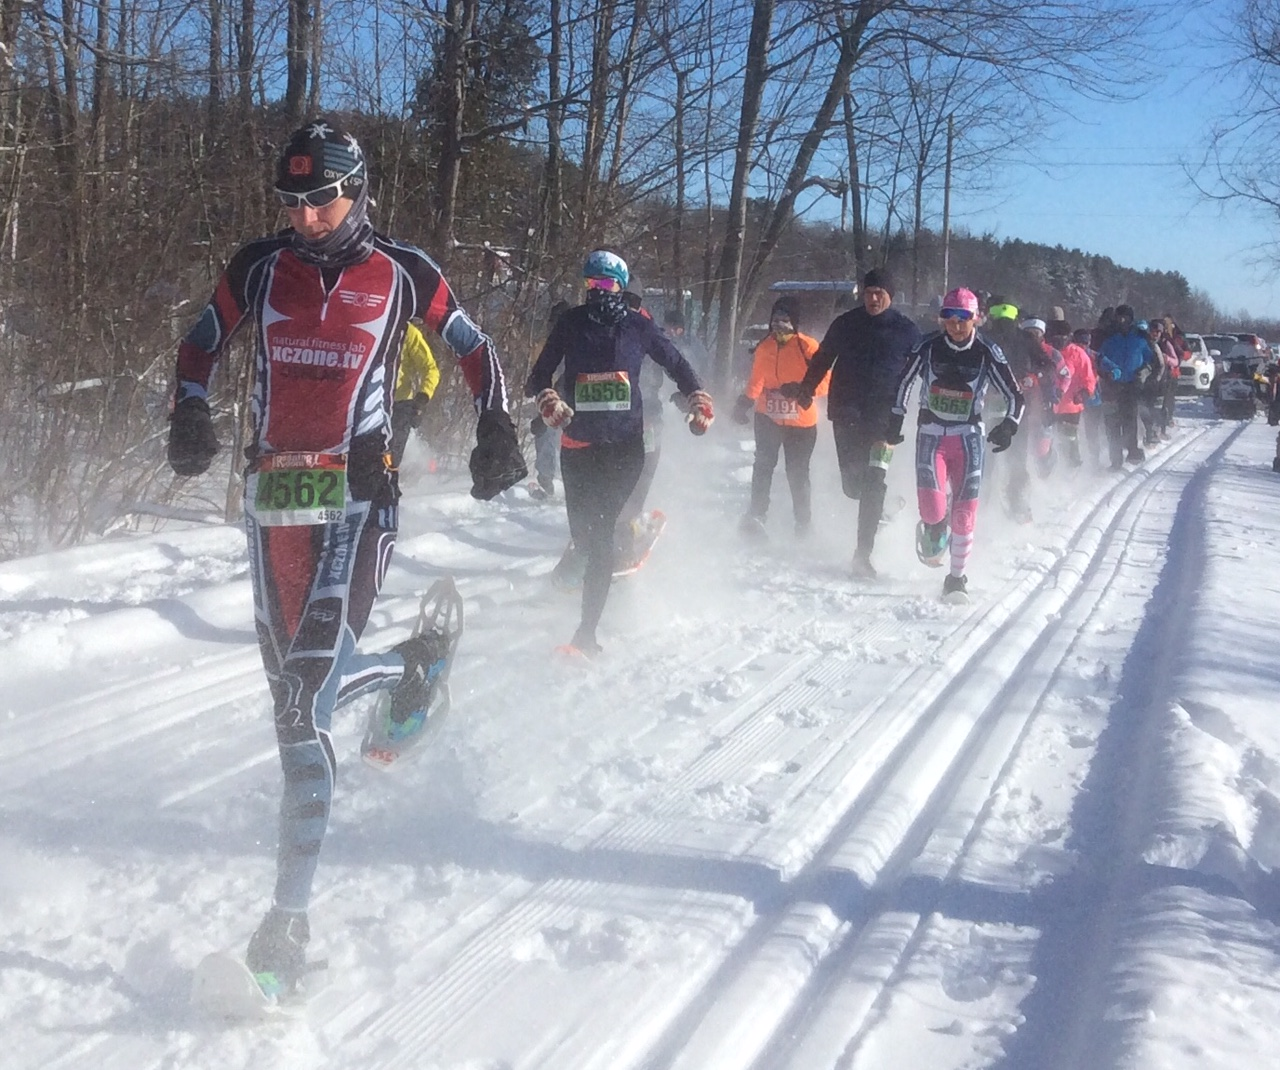 Image depicts a number of participants that entered the 7th Annual Summerstown Snowshoe Race